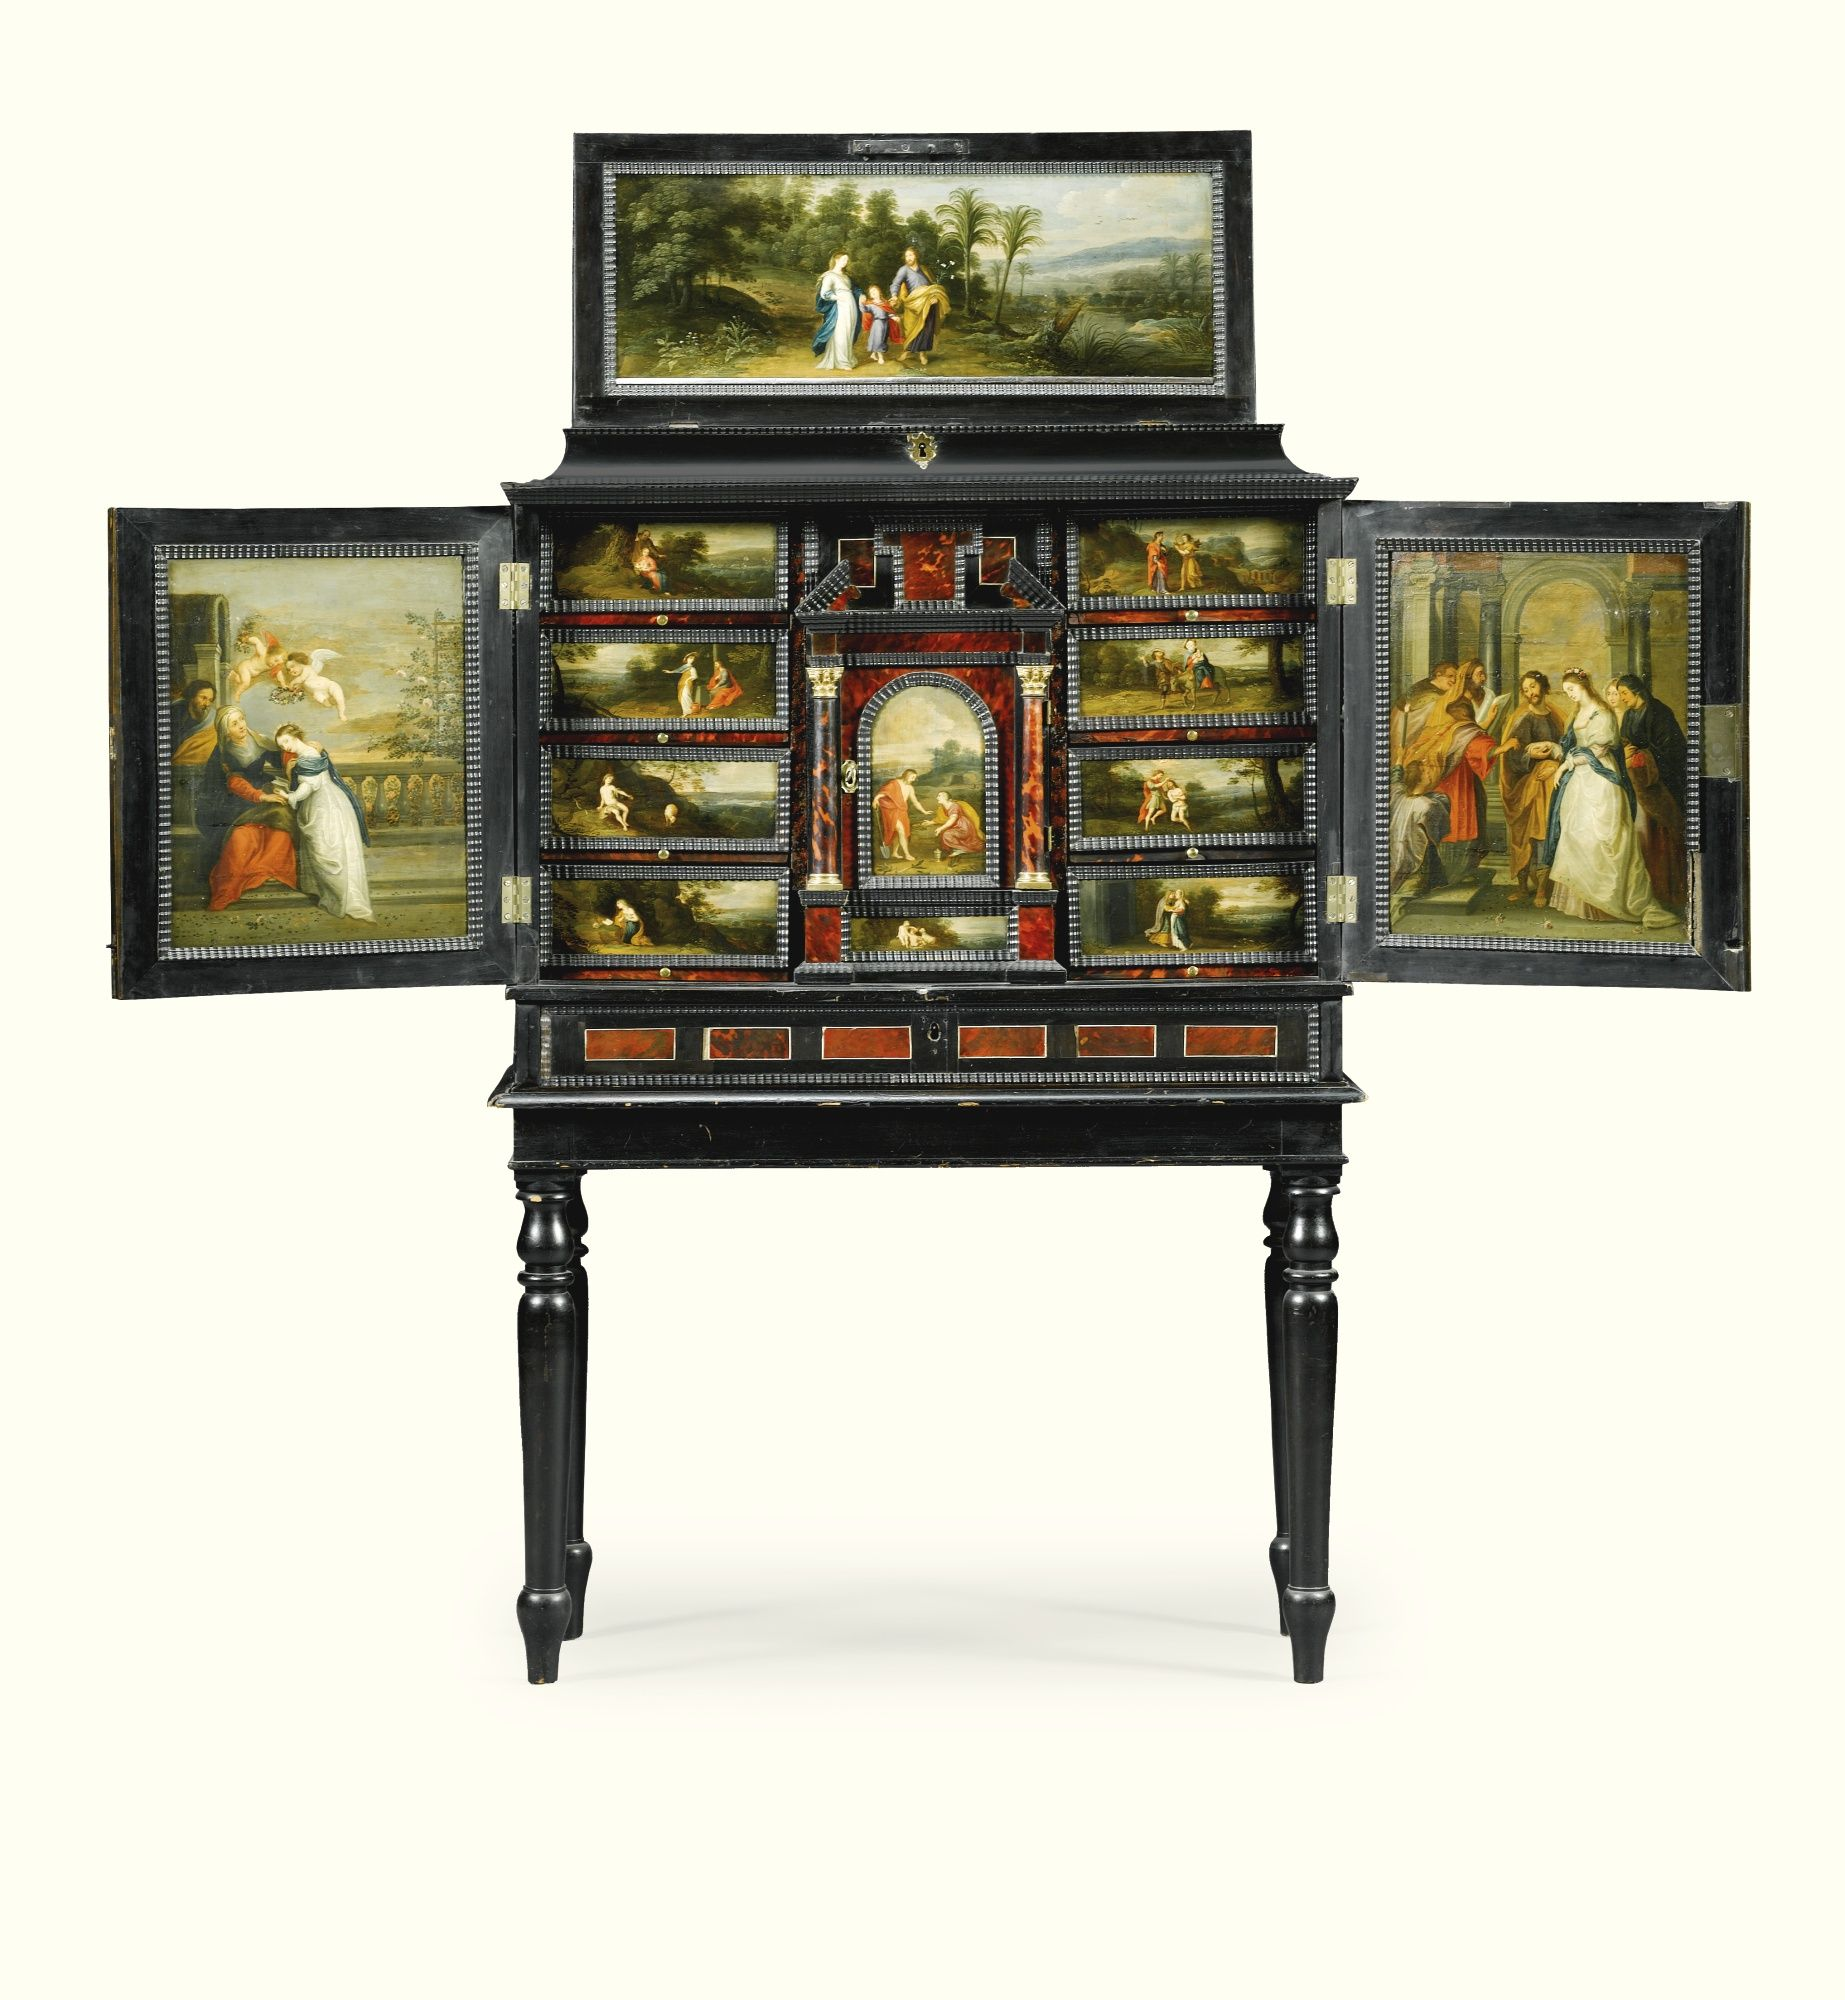 A FLEMISH IVORY INLAID EBONY, EBONISED AND TORTOISESHELL CABINET INSET WITH PAINTED PANELS, IN THE MANNER OF HENDRIK VAN BALEN (1575-1632), ANTWERP SECOND HALF 17TH CENTURY